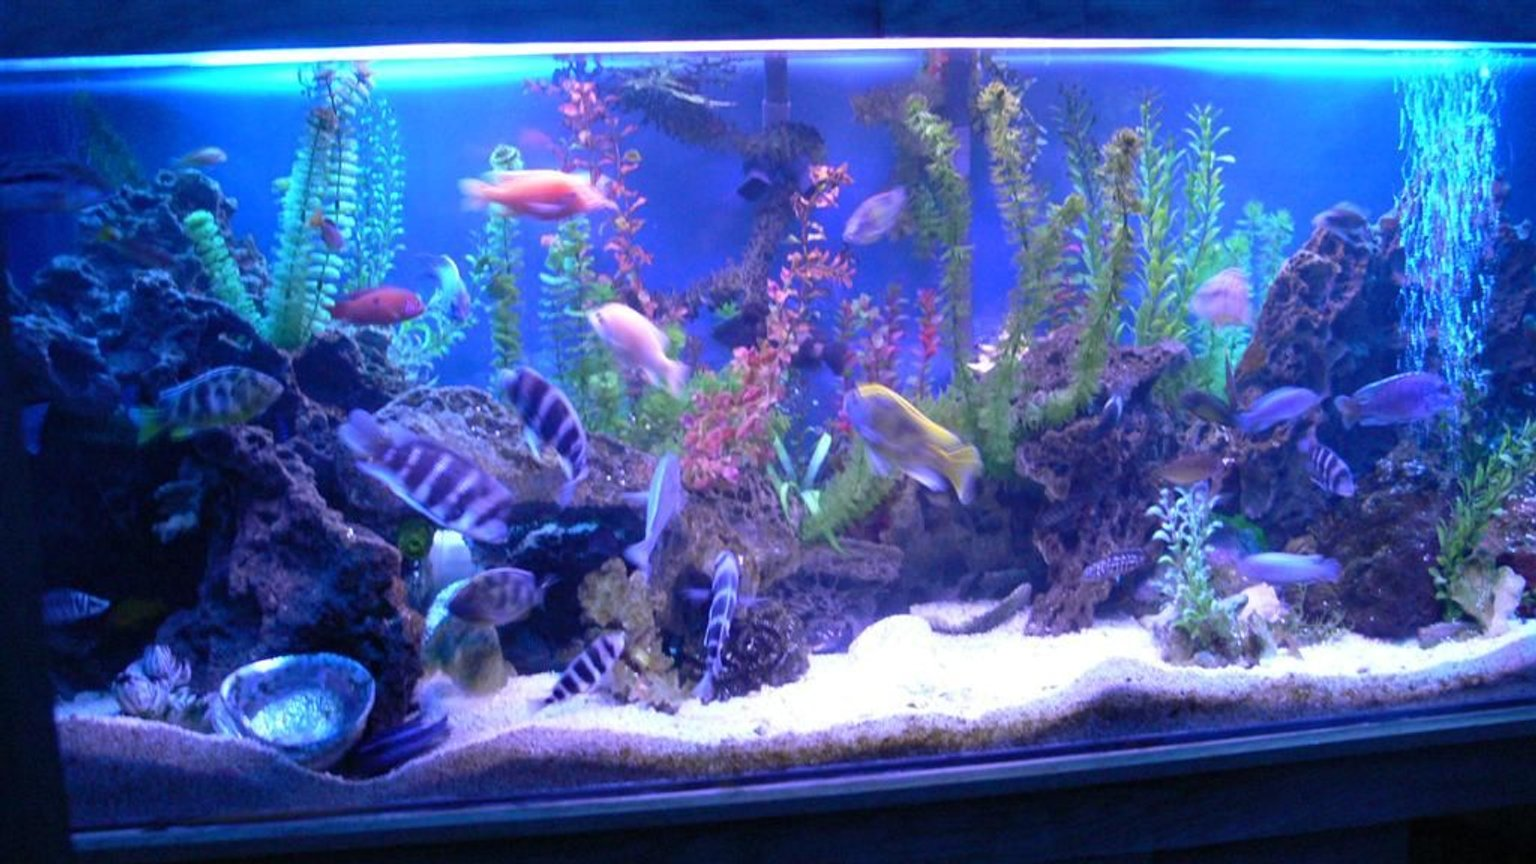 300 gallons freshwater fish tank (mostly fish and non-living decorations) - 1200L(300Gal) tank with 90 african cichlids.